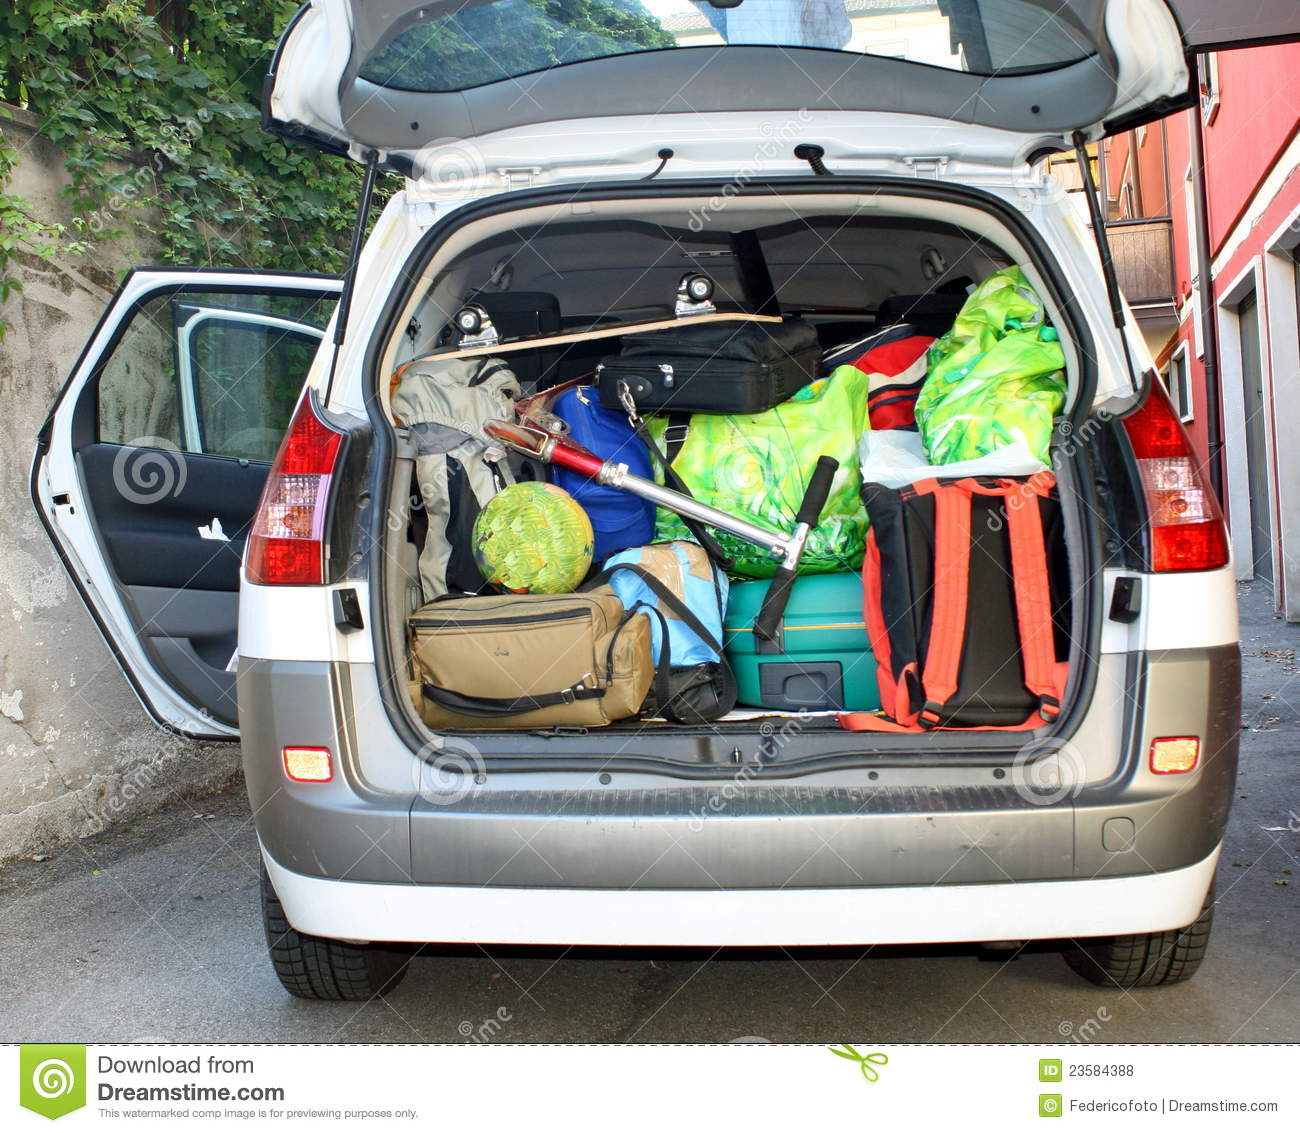 United Baggage Prices Very Car With The Trunk Full Of Luggage Stock Photo